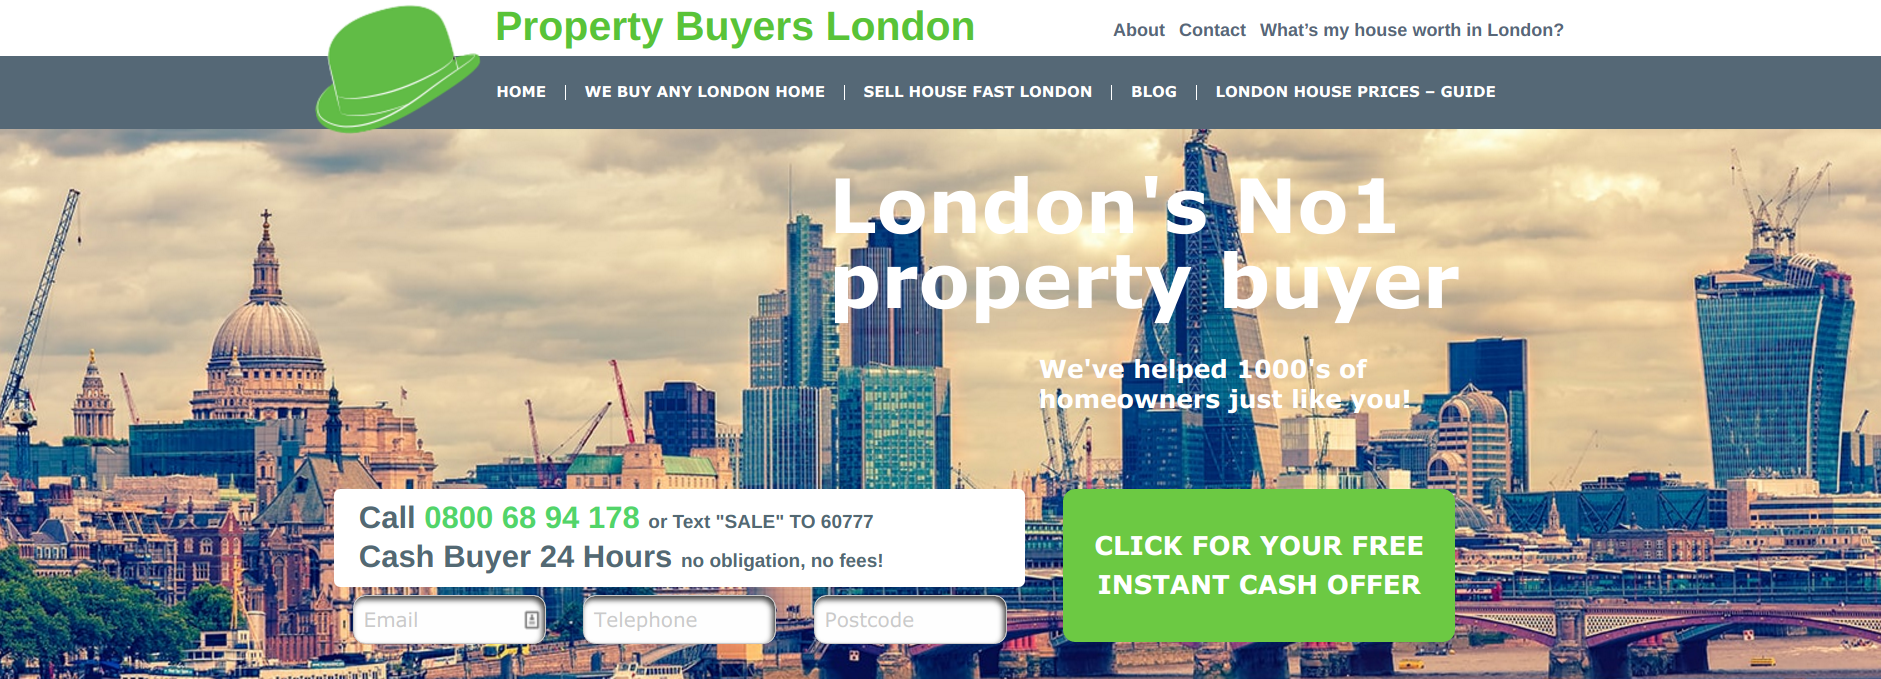 Read Property Buyers London Reviews